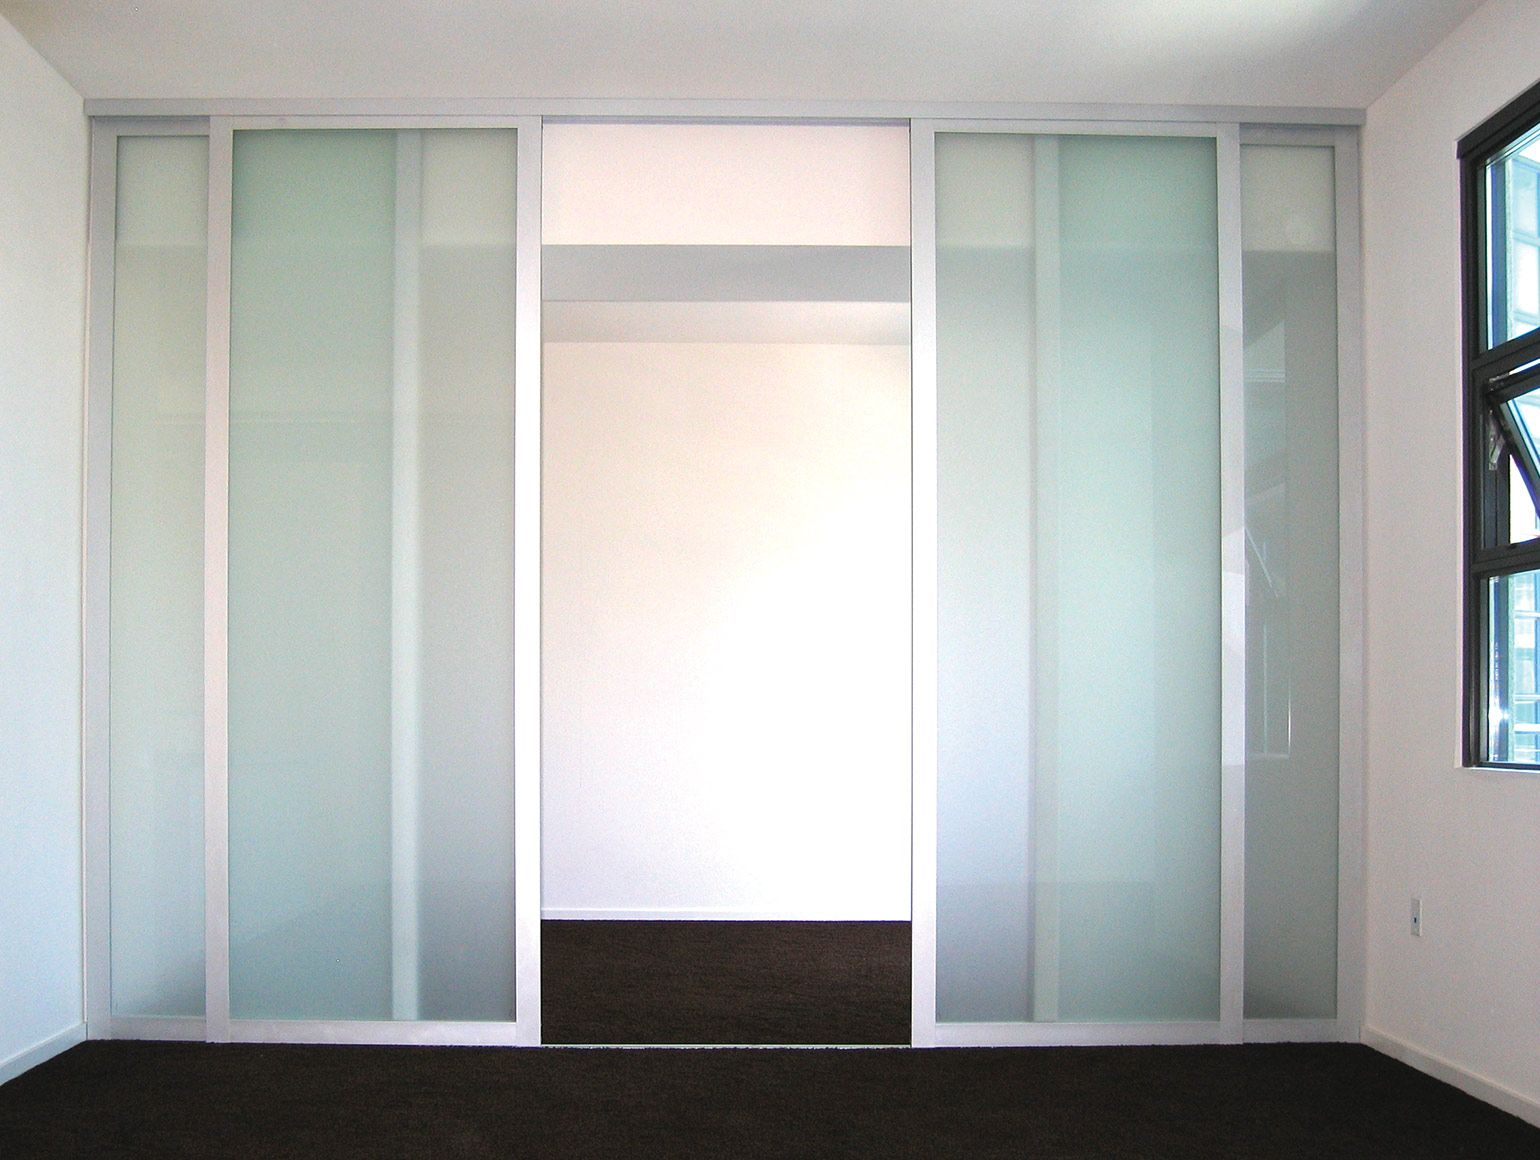 Genial Seeing Double? Double Sliding Glass Doors Easily And Attractively Divide  One Room Into Two!